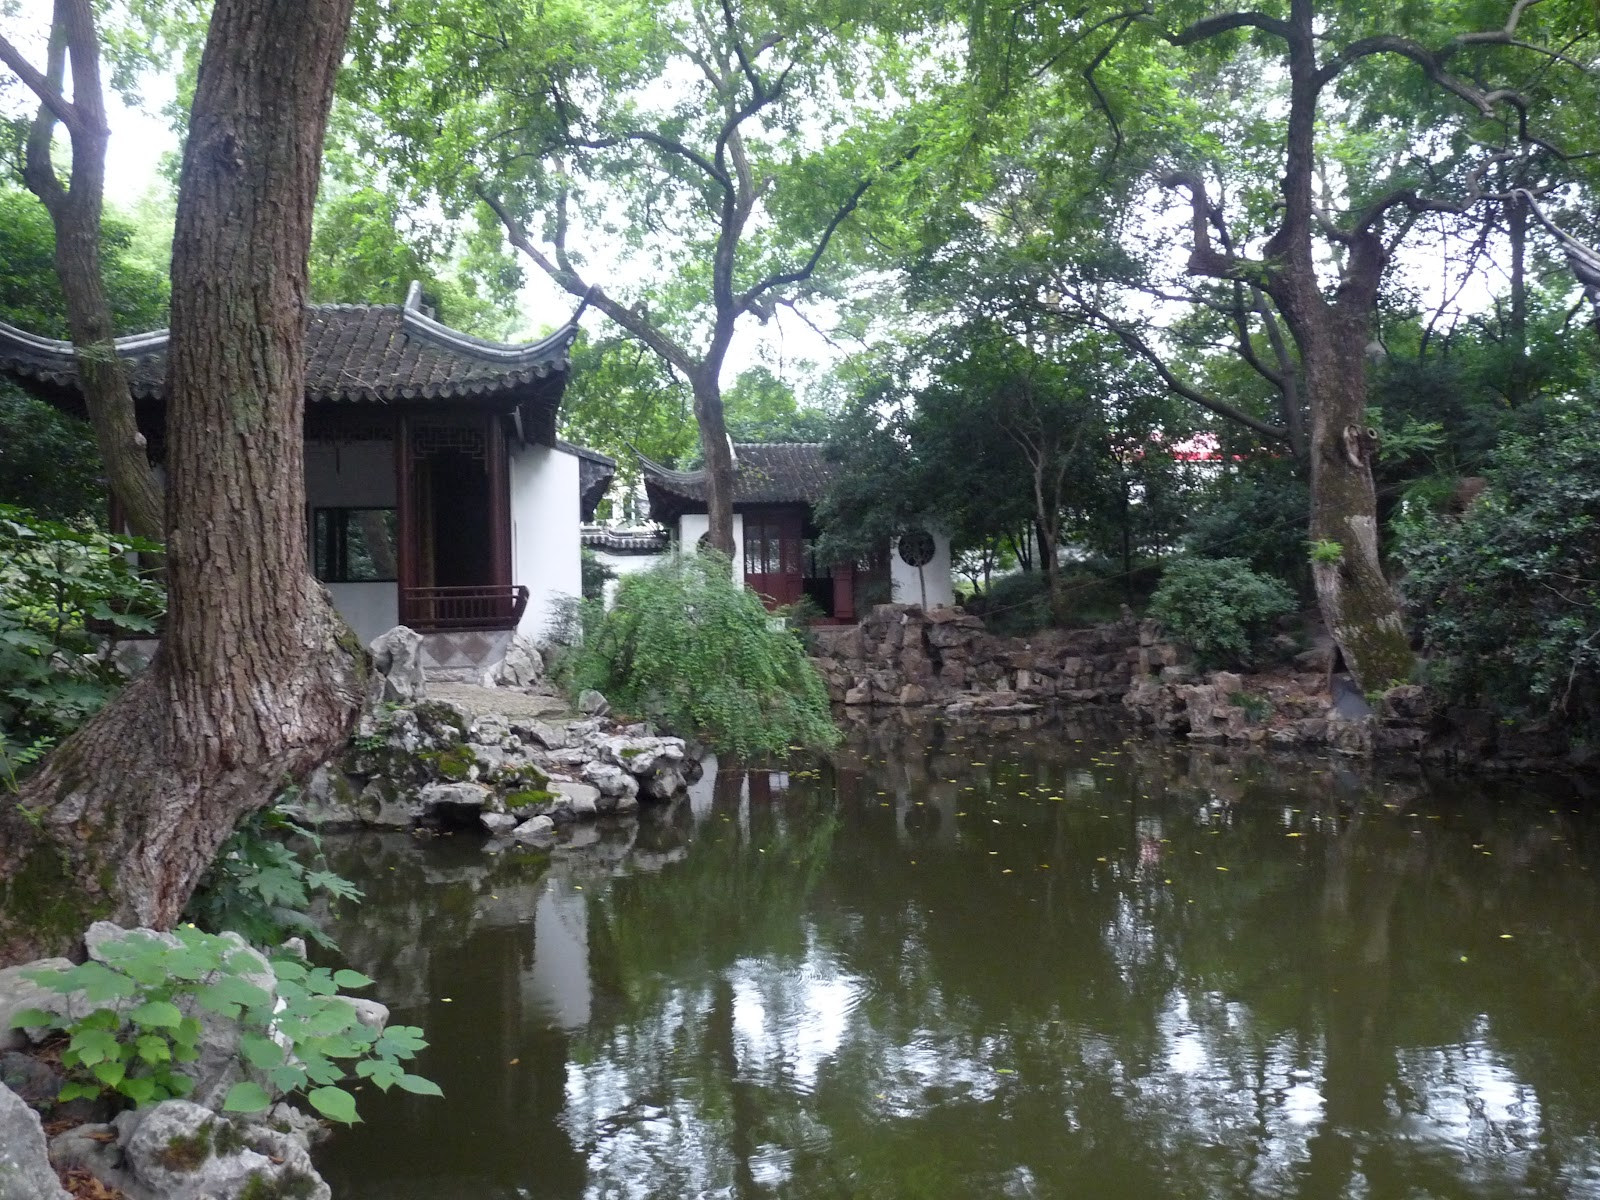 Blog en blanco parques y jardines en china - Jardin de china ...